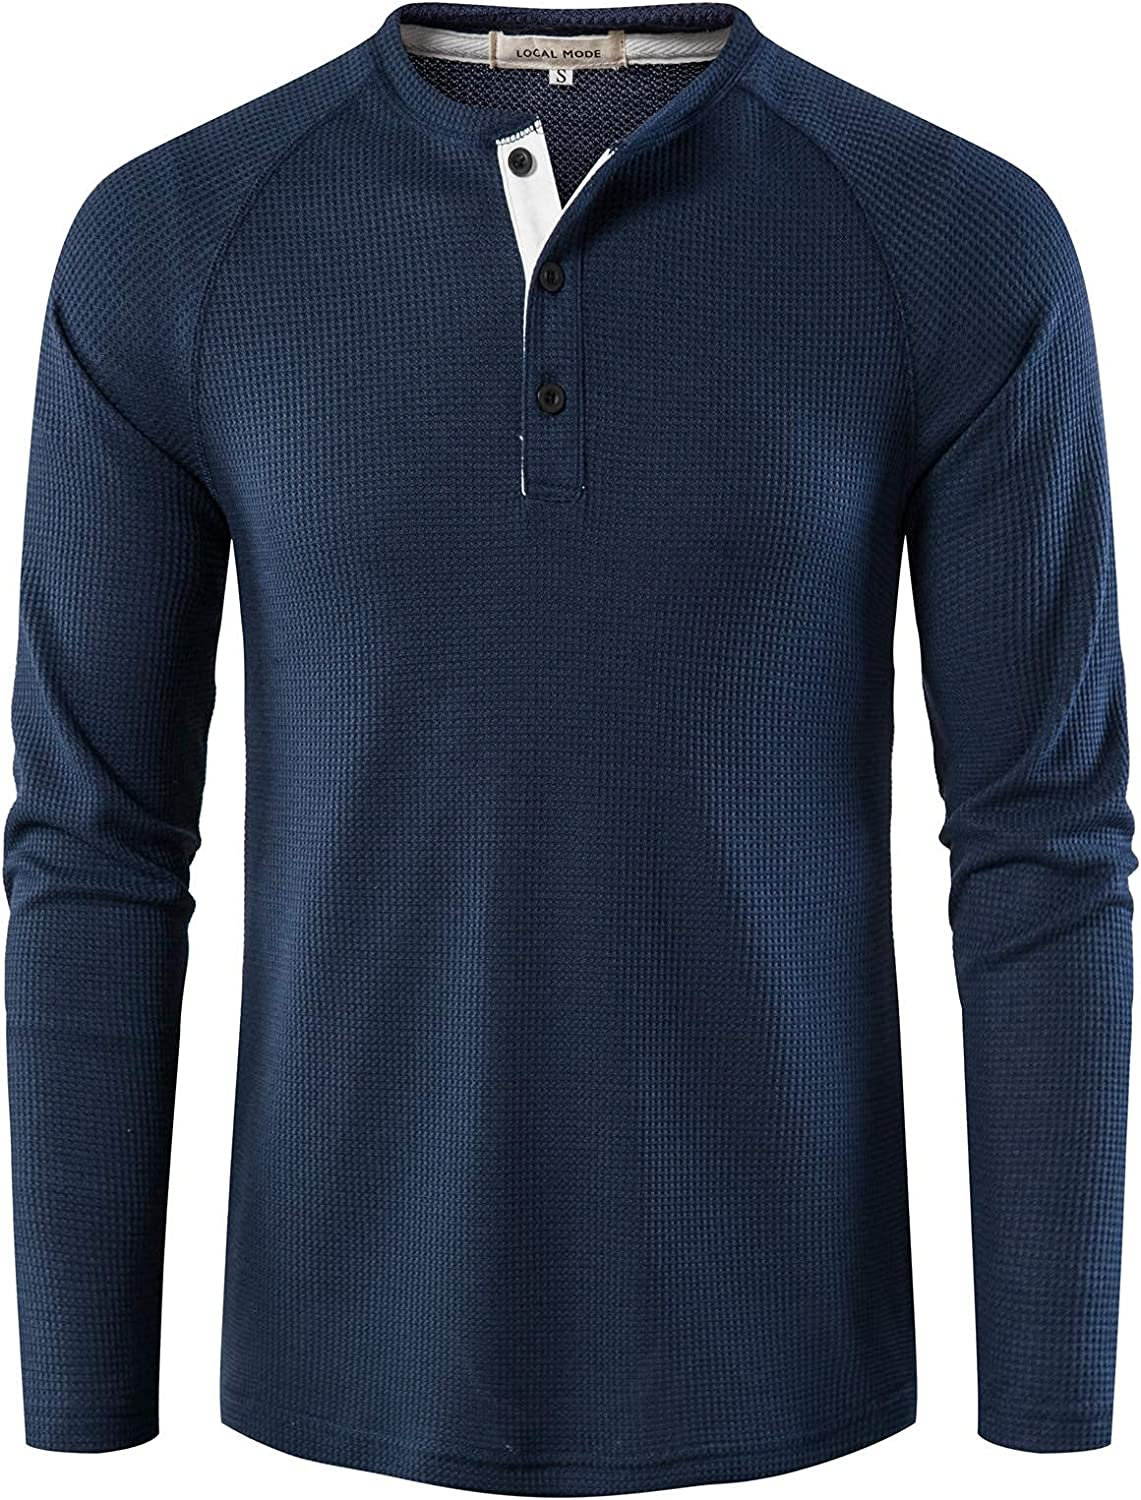 Casual Henley Shirt Long Sleeve 3 Buttons Tee Shirts Big and Tall Big Fashion Slim Cotton Tops for Men